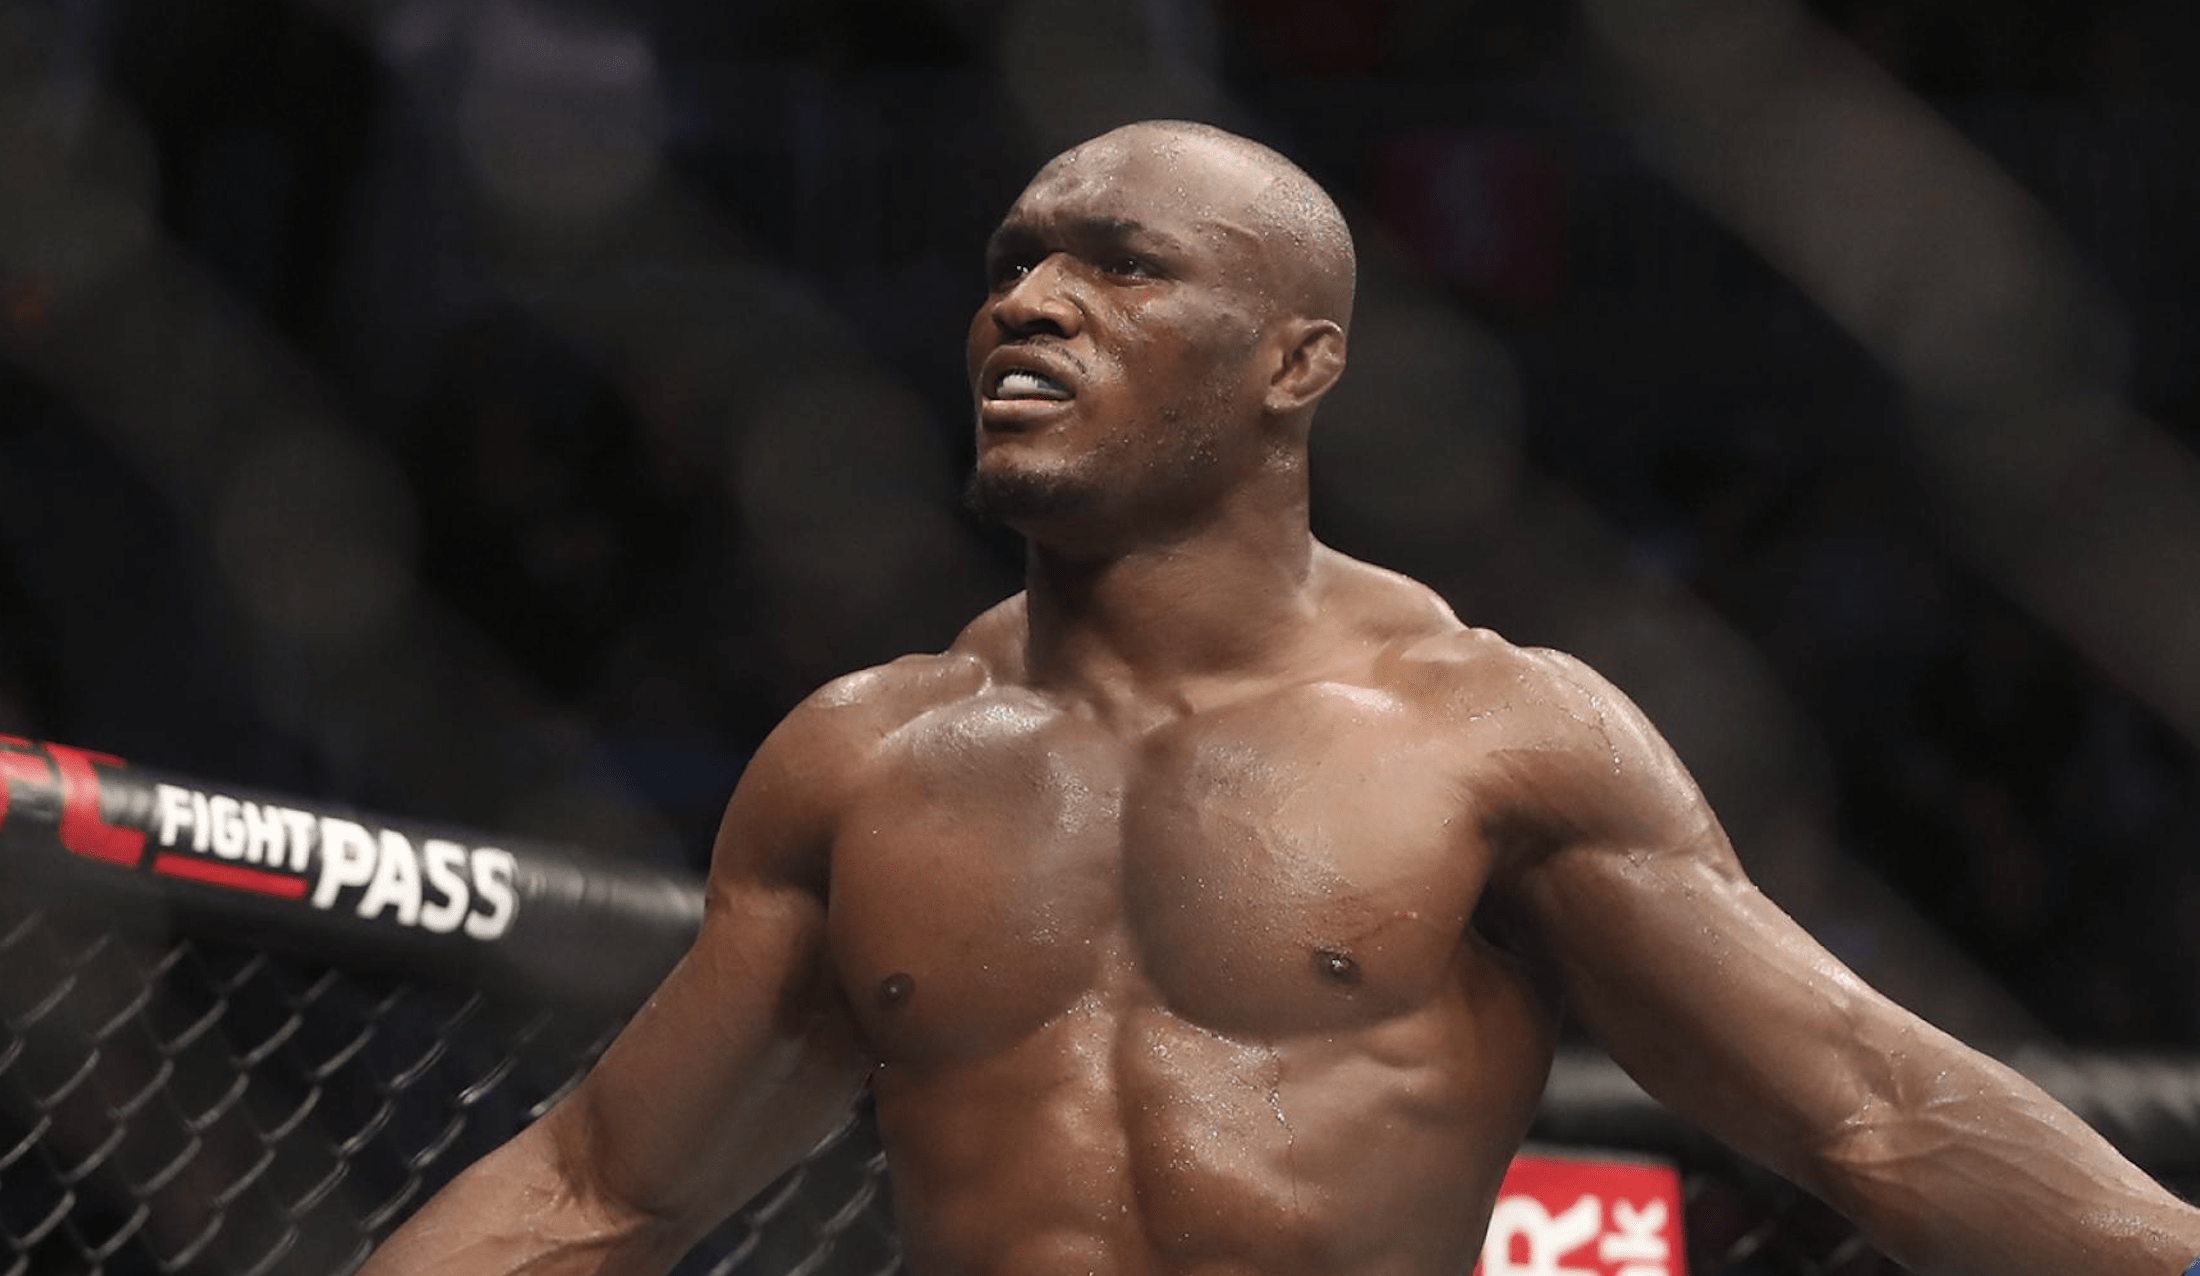 This Is How The MMA World Reacted To UFC 258